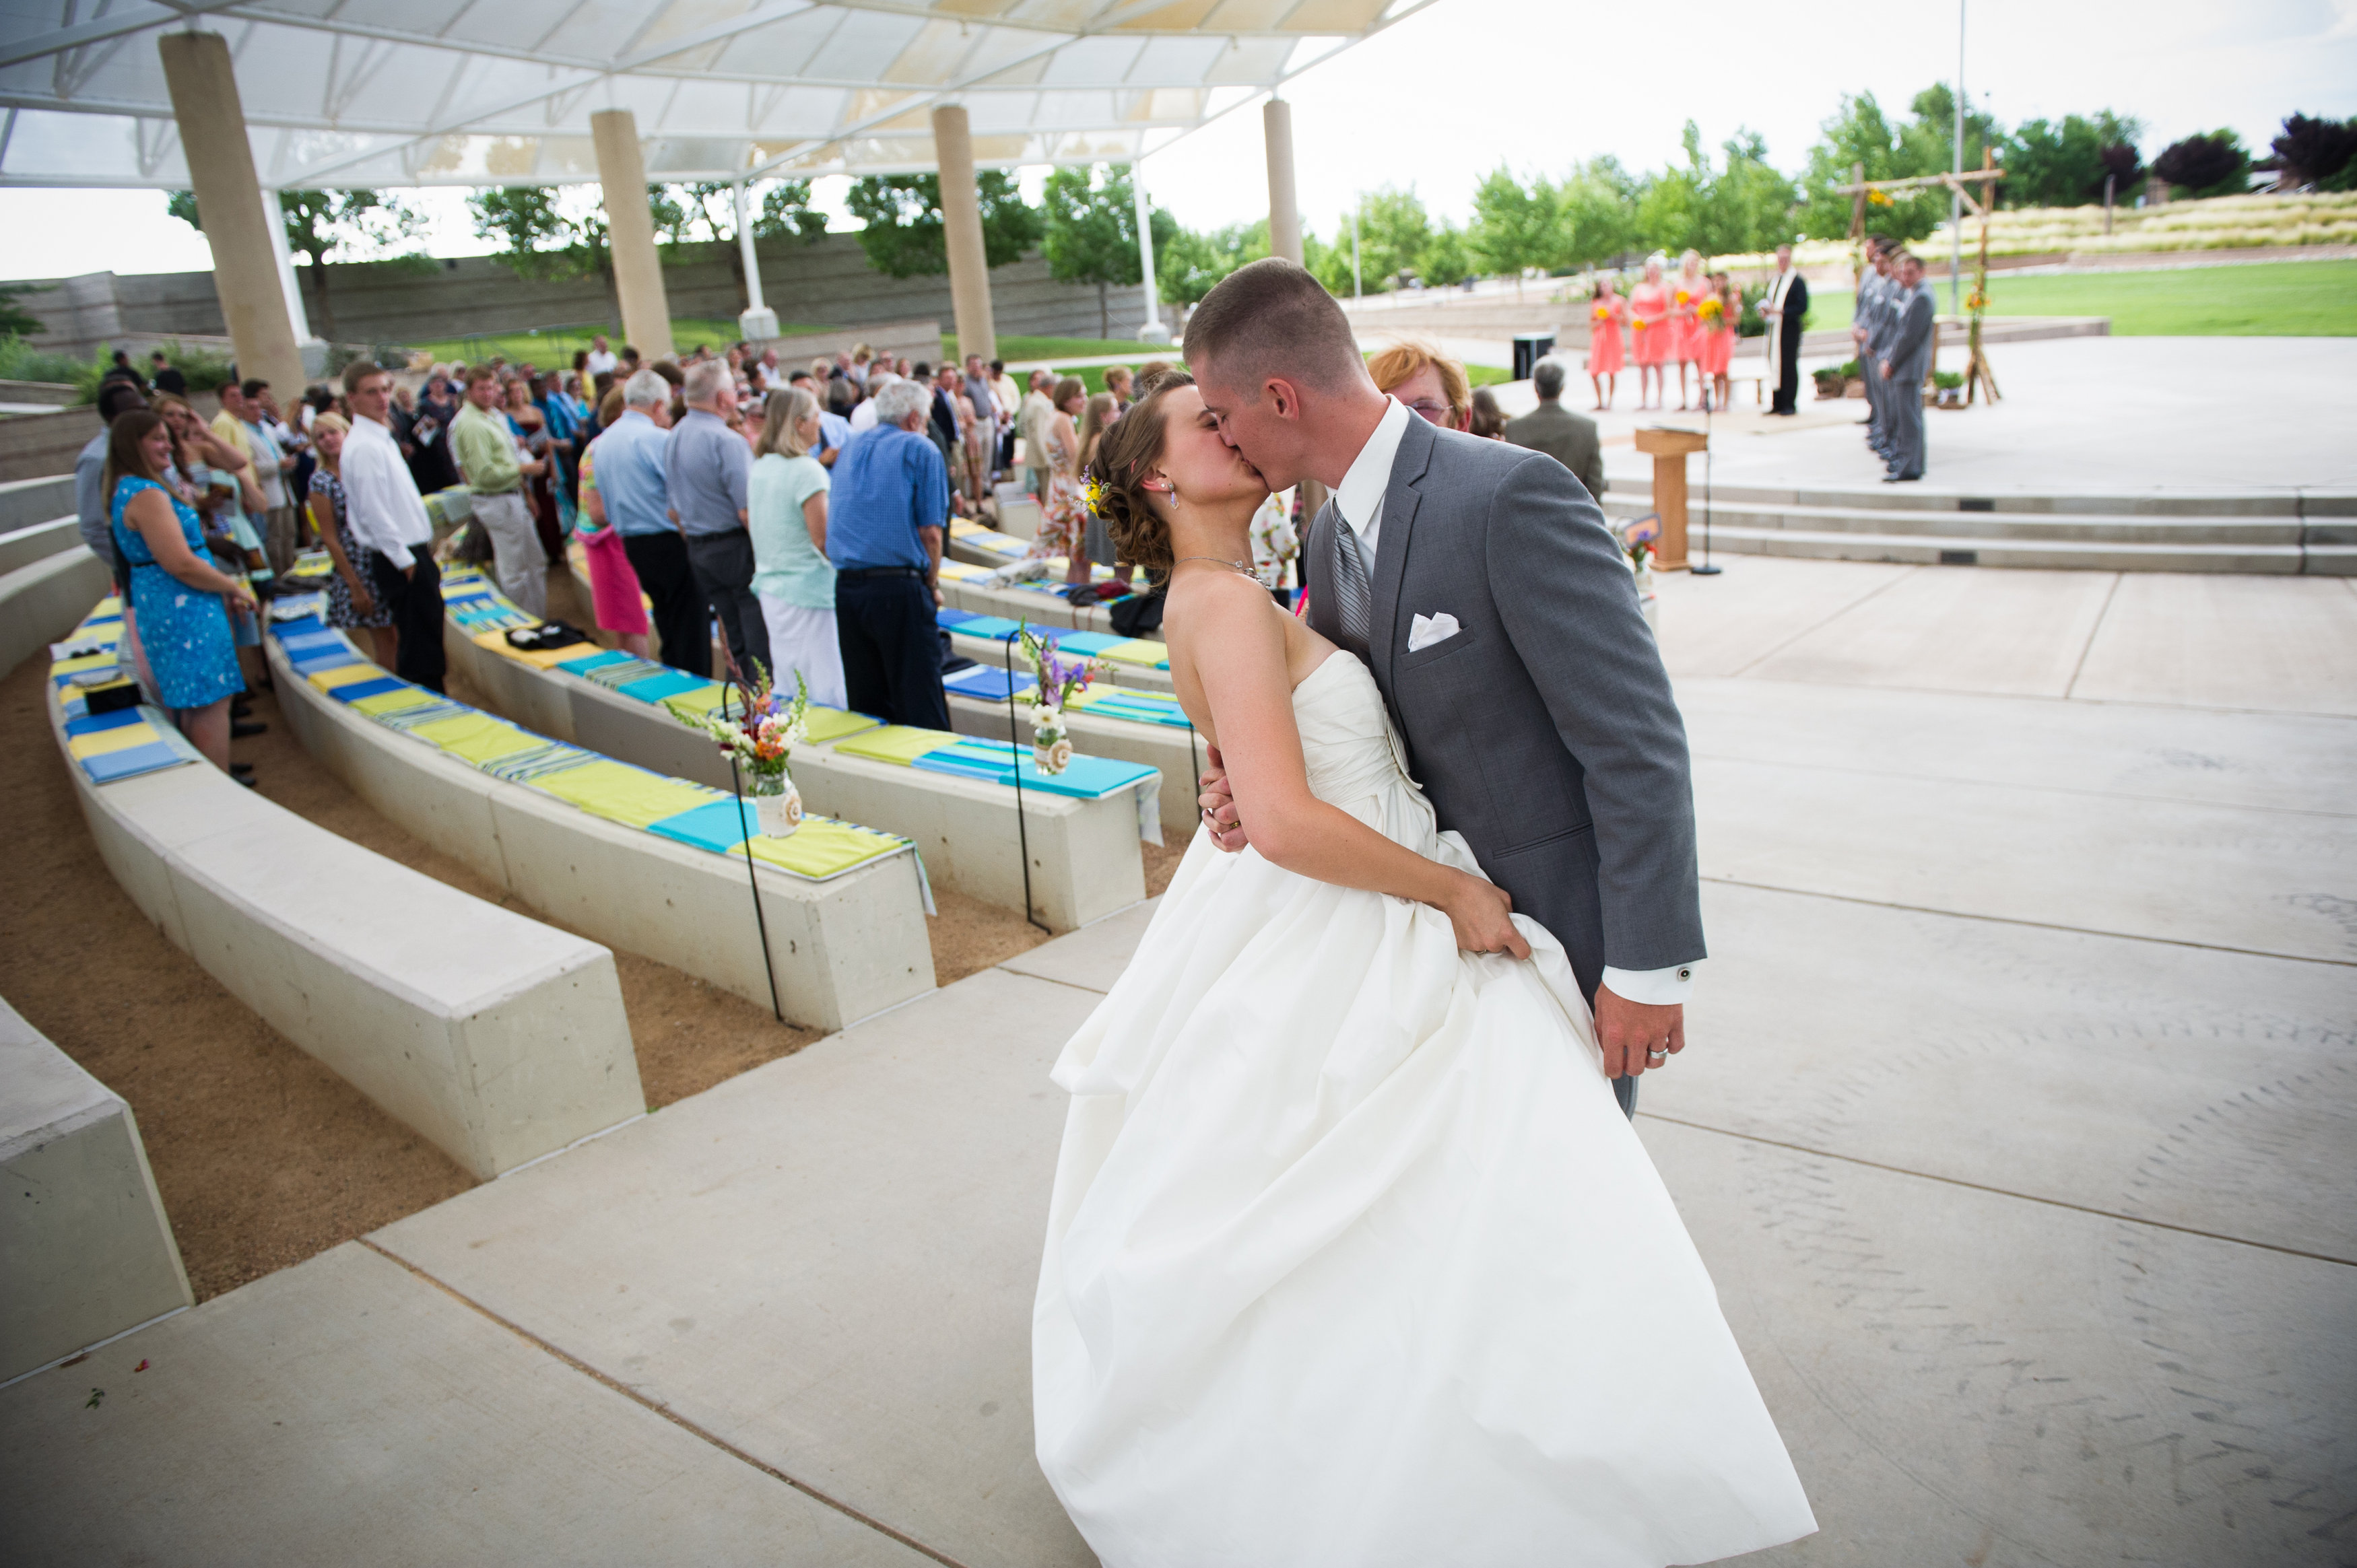 Pawlik Wedding 2014//The Ceremony//Dan Dalstra Photography